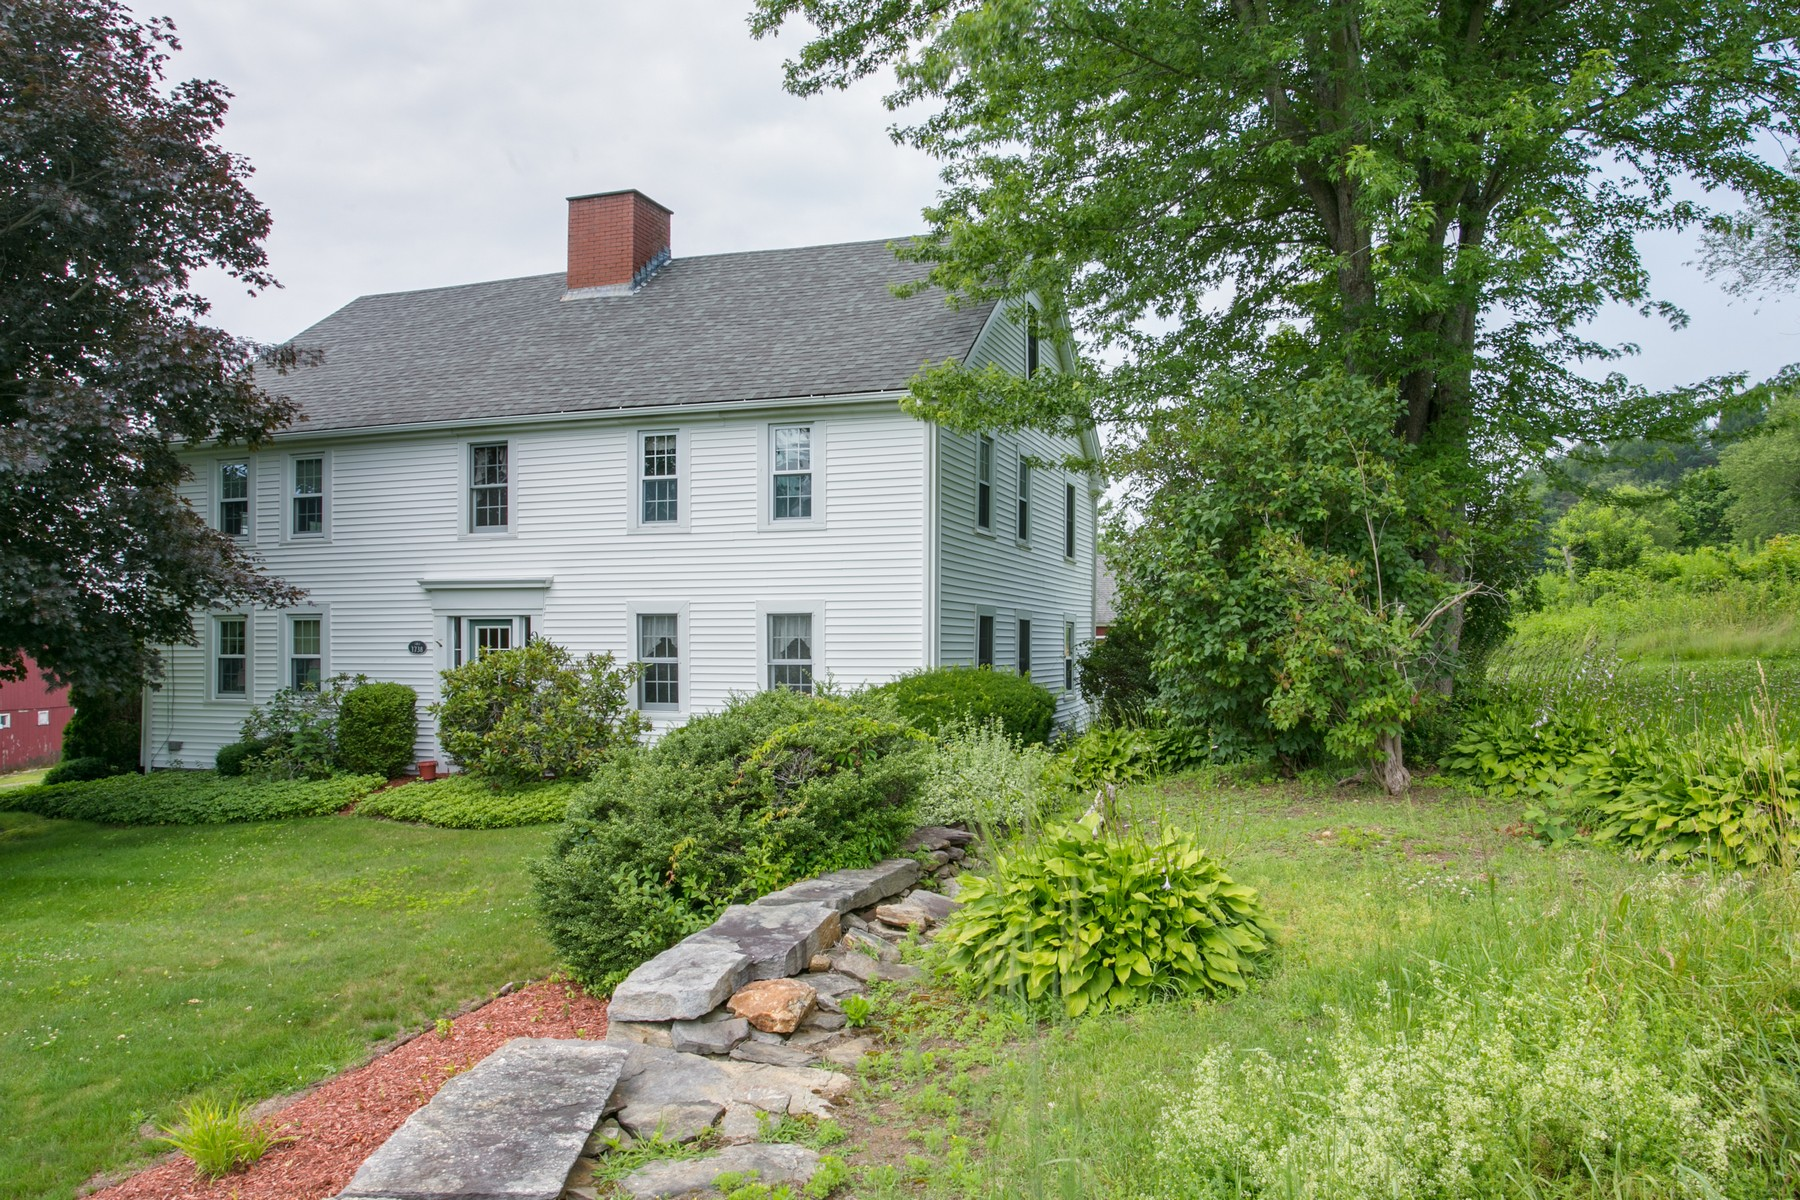 واحد منزل الأسرة للـ Sale في Charming Antique Colonial 10 Bigelow Road North Brookfield, Massachusetts 01535 United States